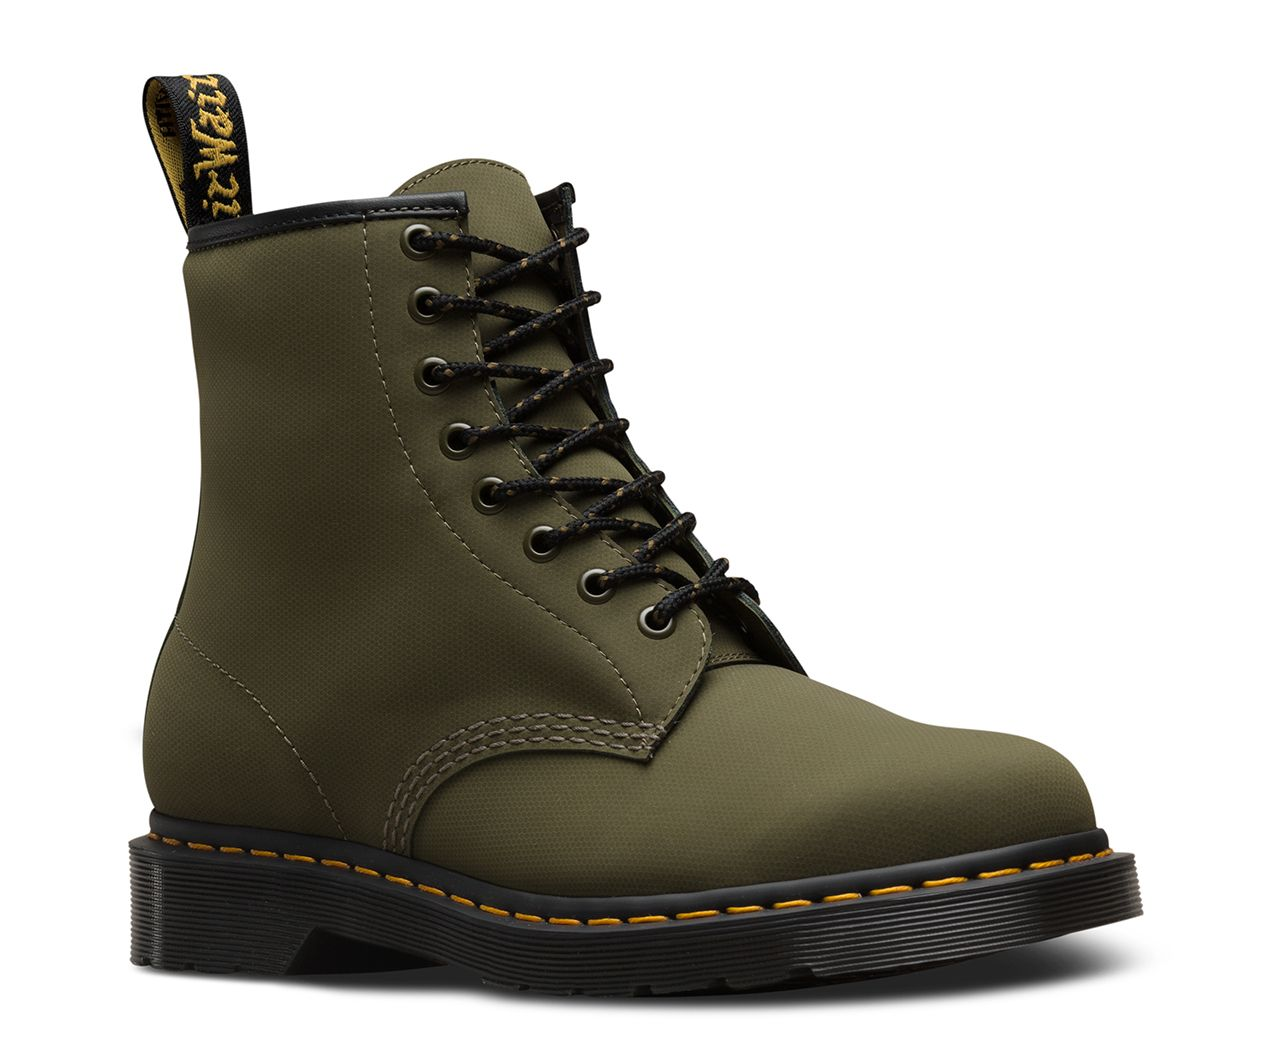 Dr Martens 1460 8 Hole Leather Boot – E Male Lifestyle